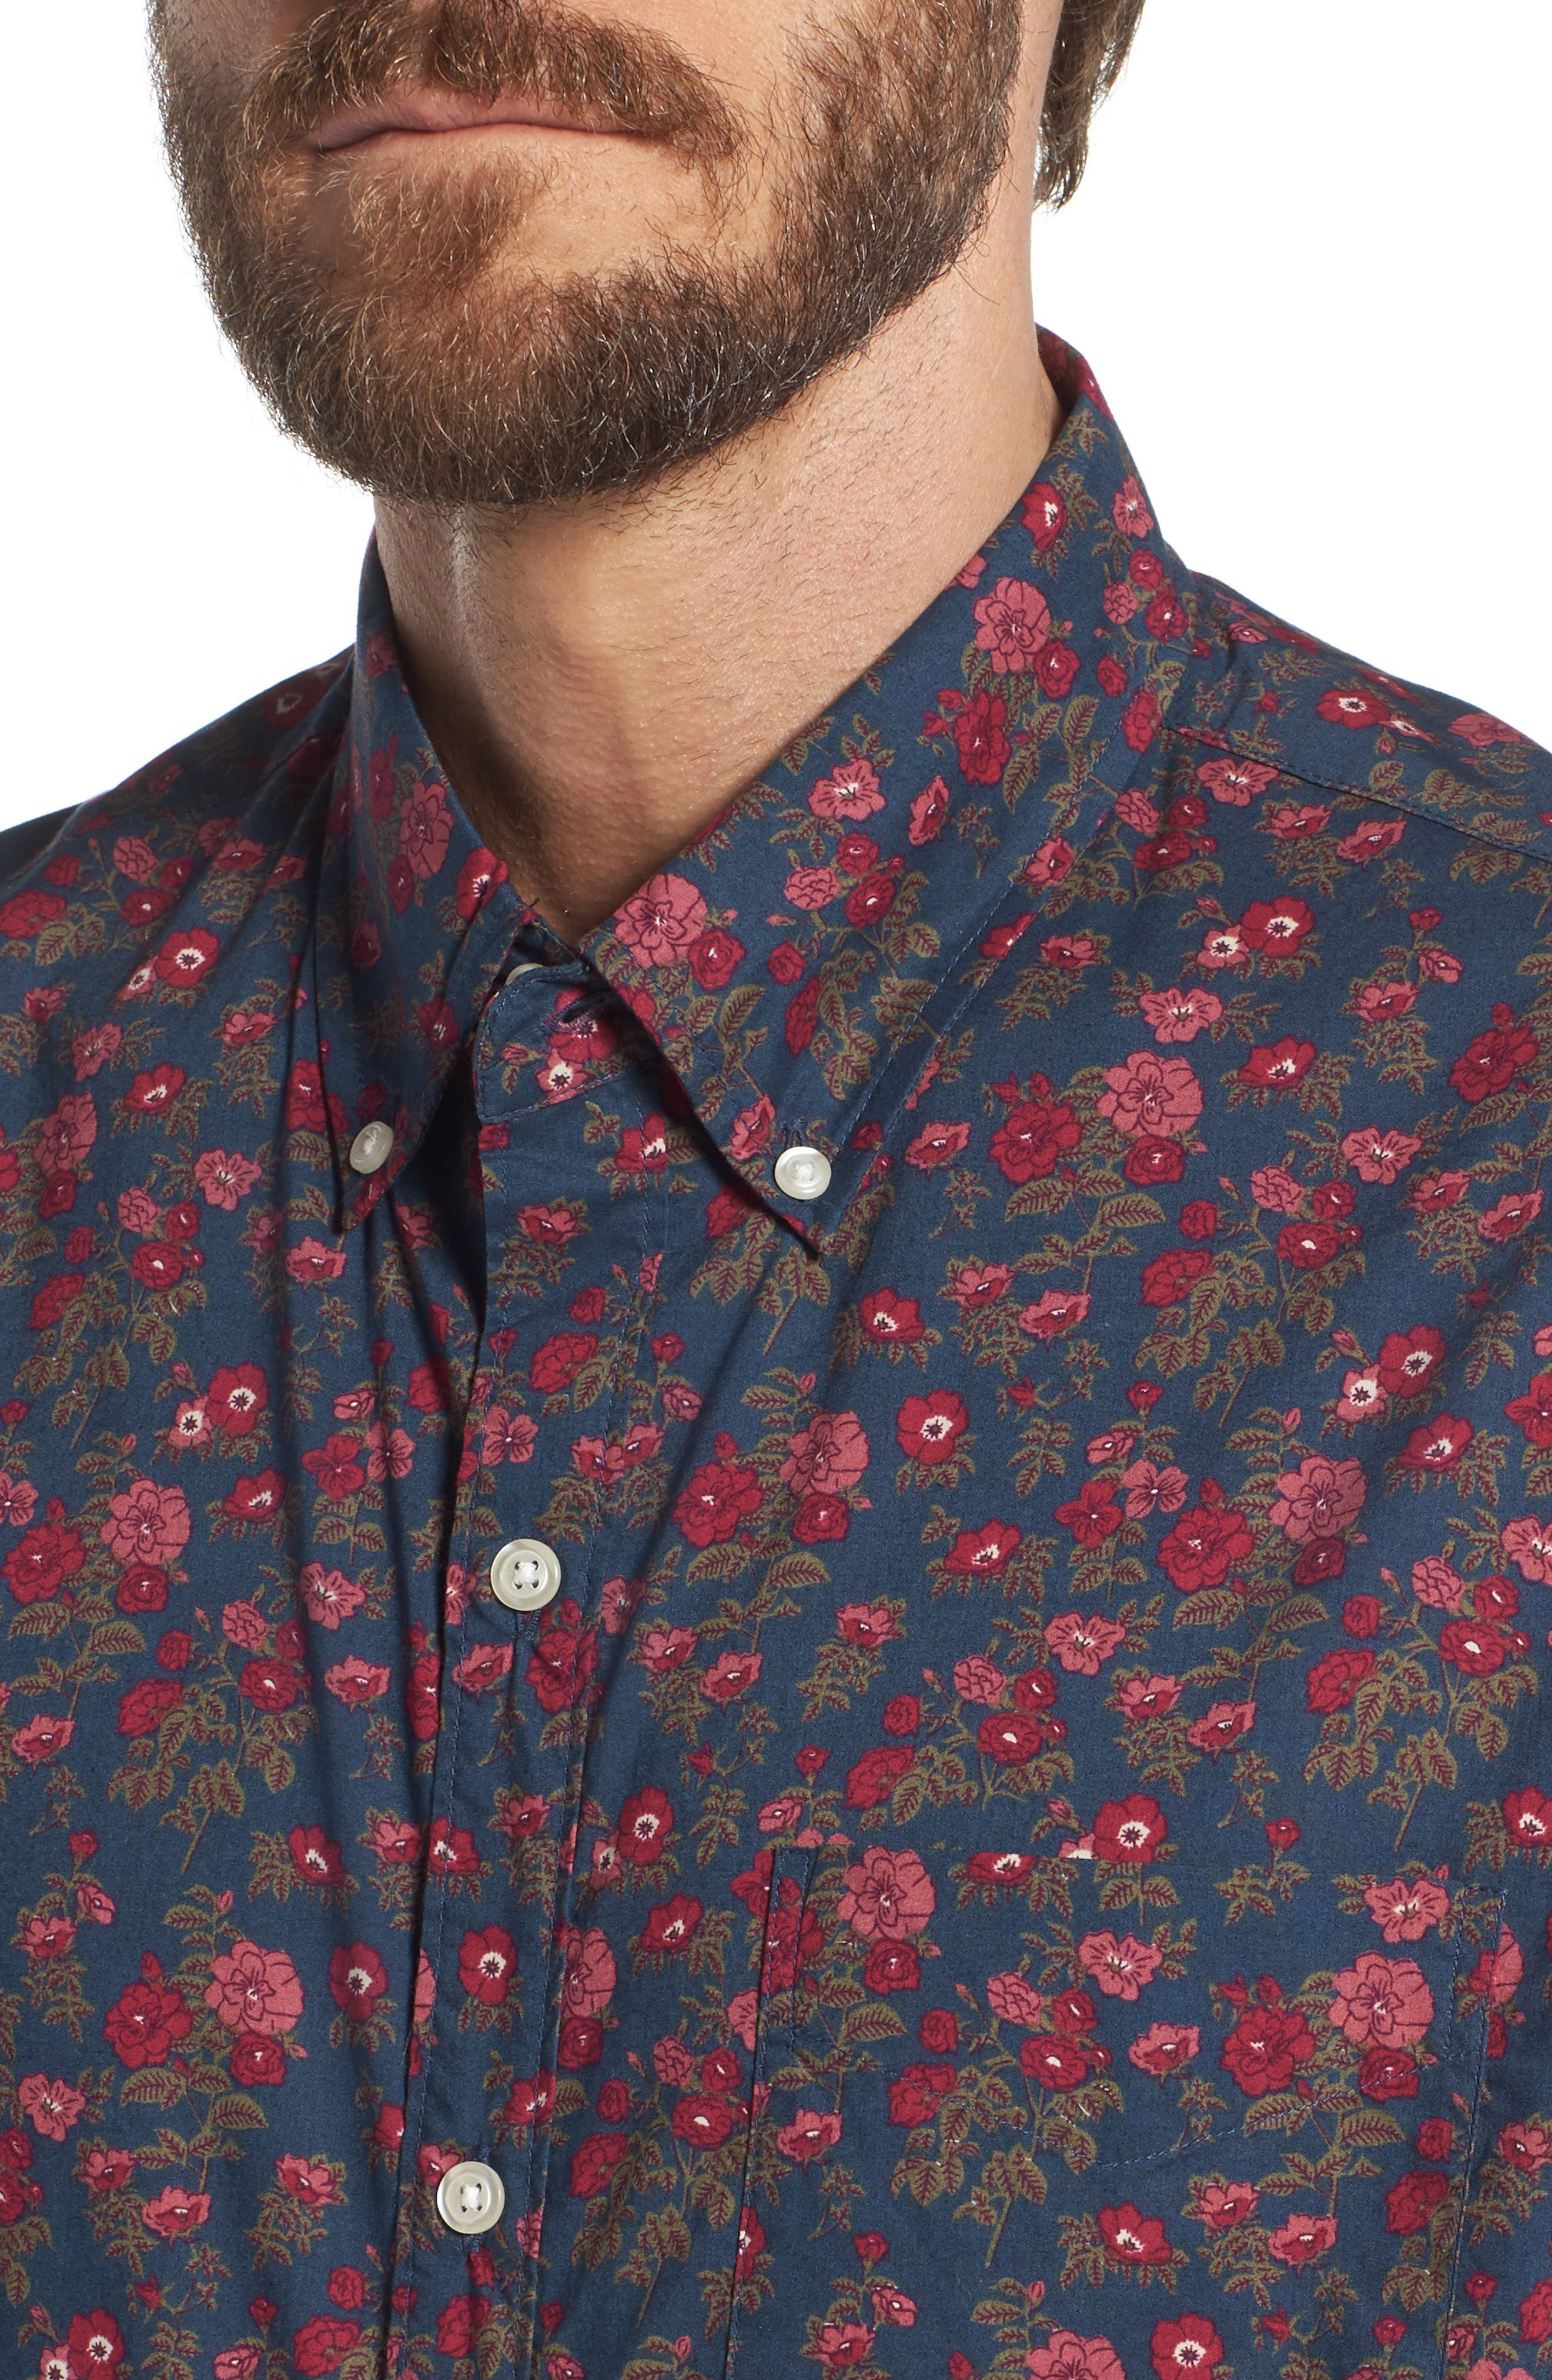 Riviera Slim Fit Floral Print Sport Shirt,                             Alternate thumbnail 4, color,                             400